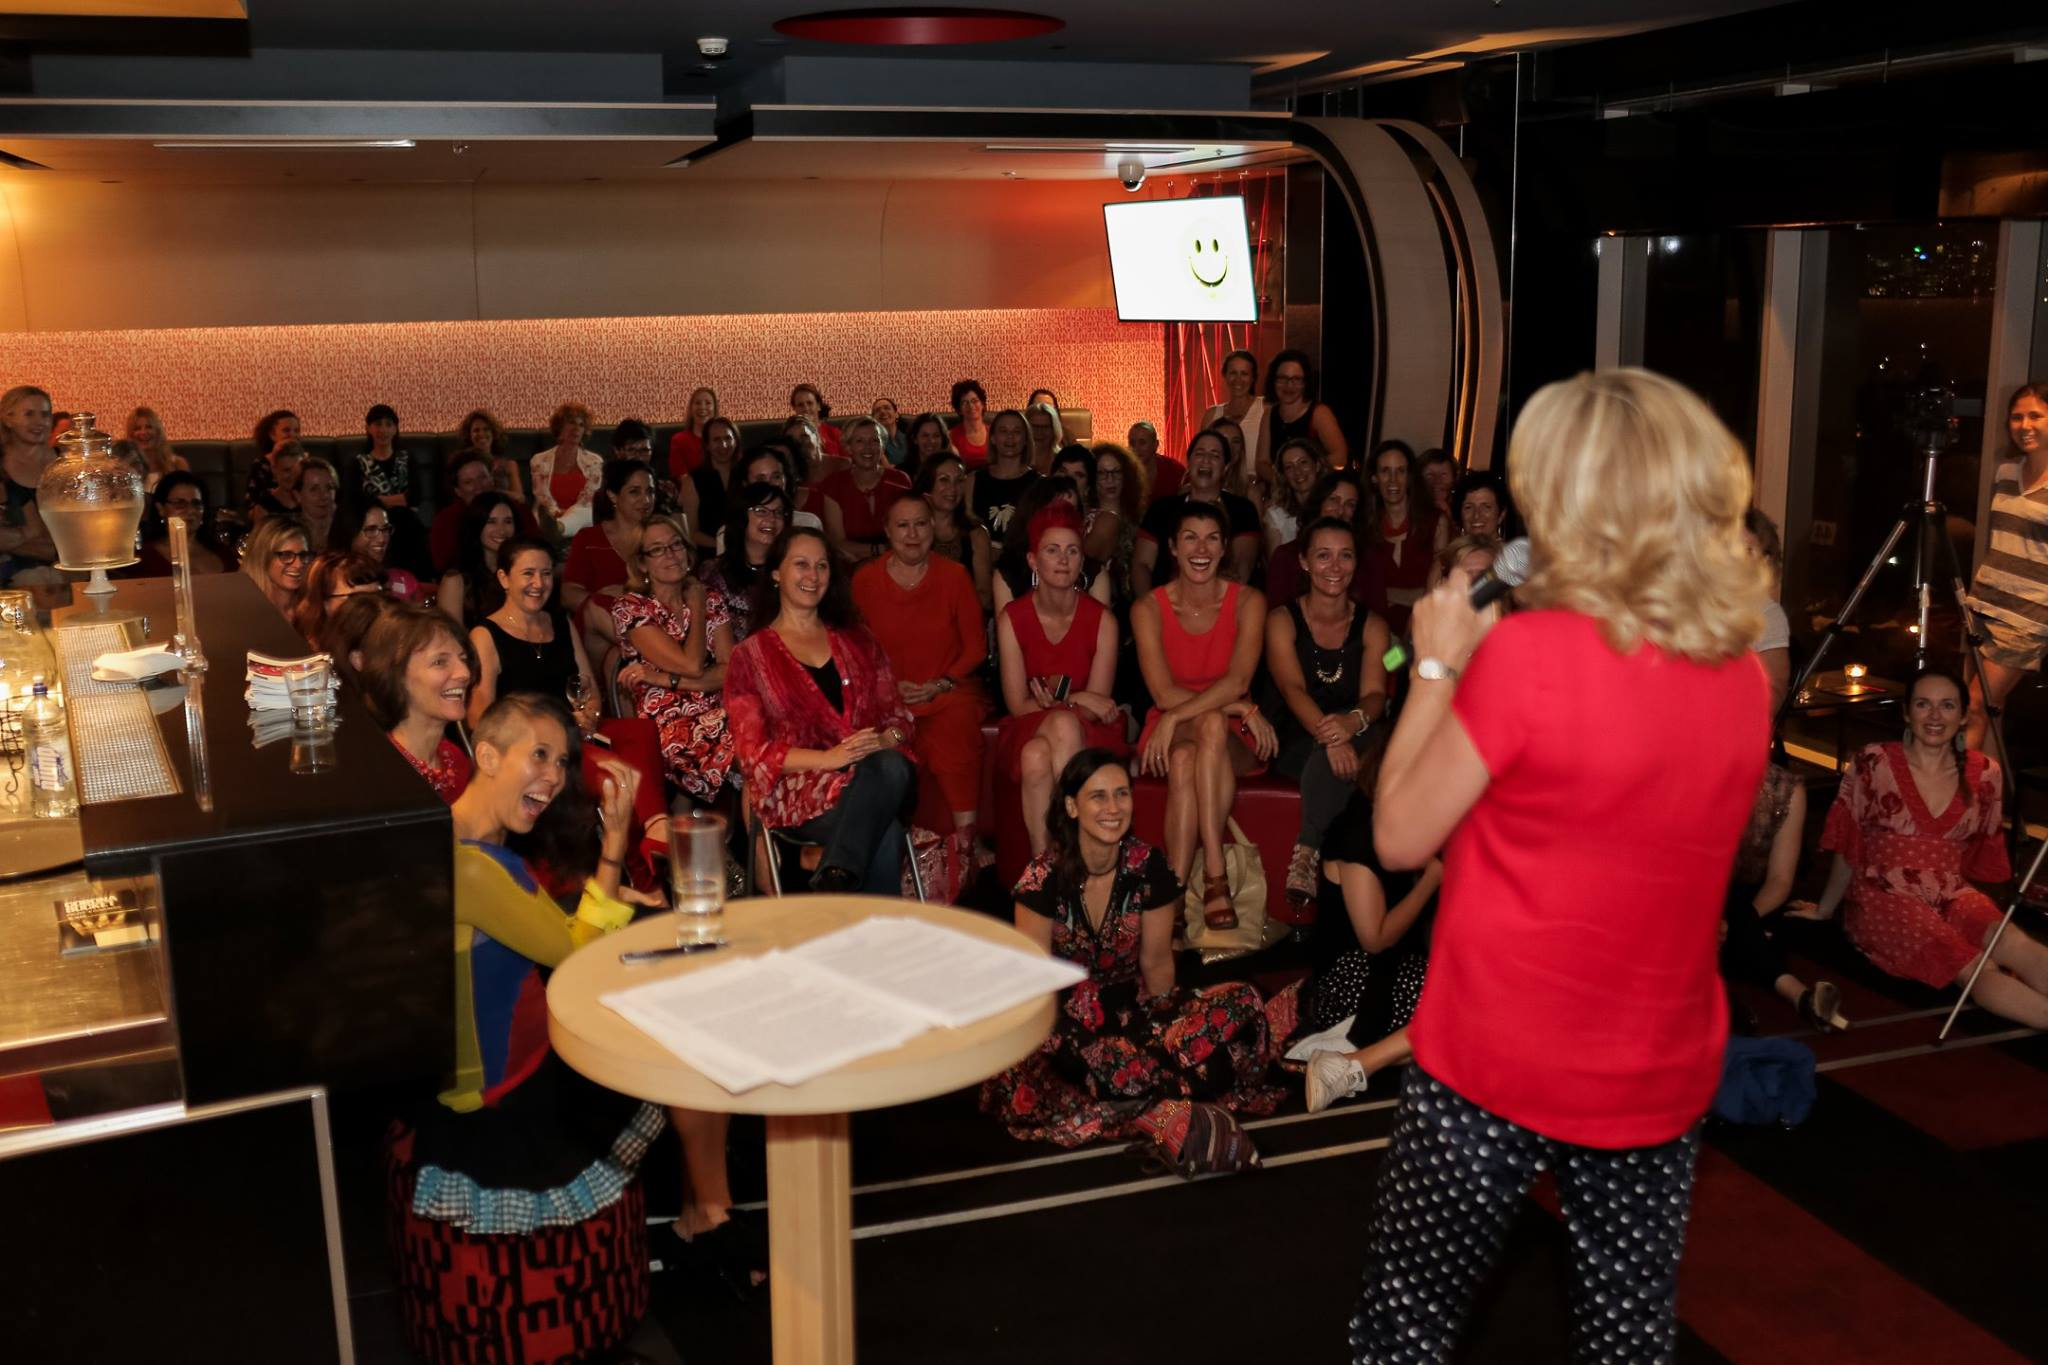 Comedienne and author Jean Kittson captivating the room of women in red